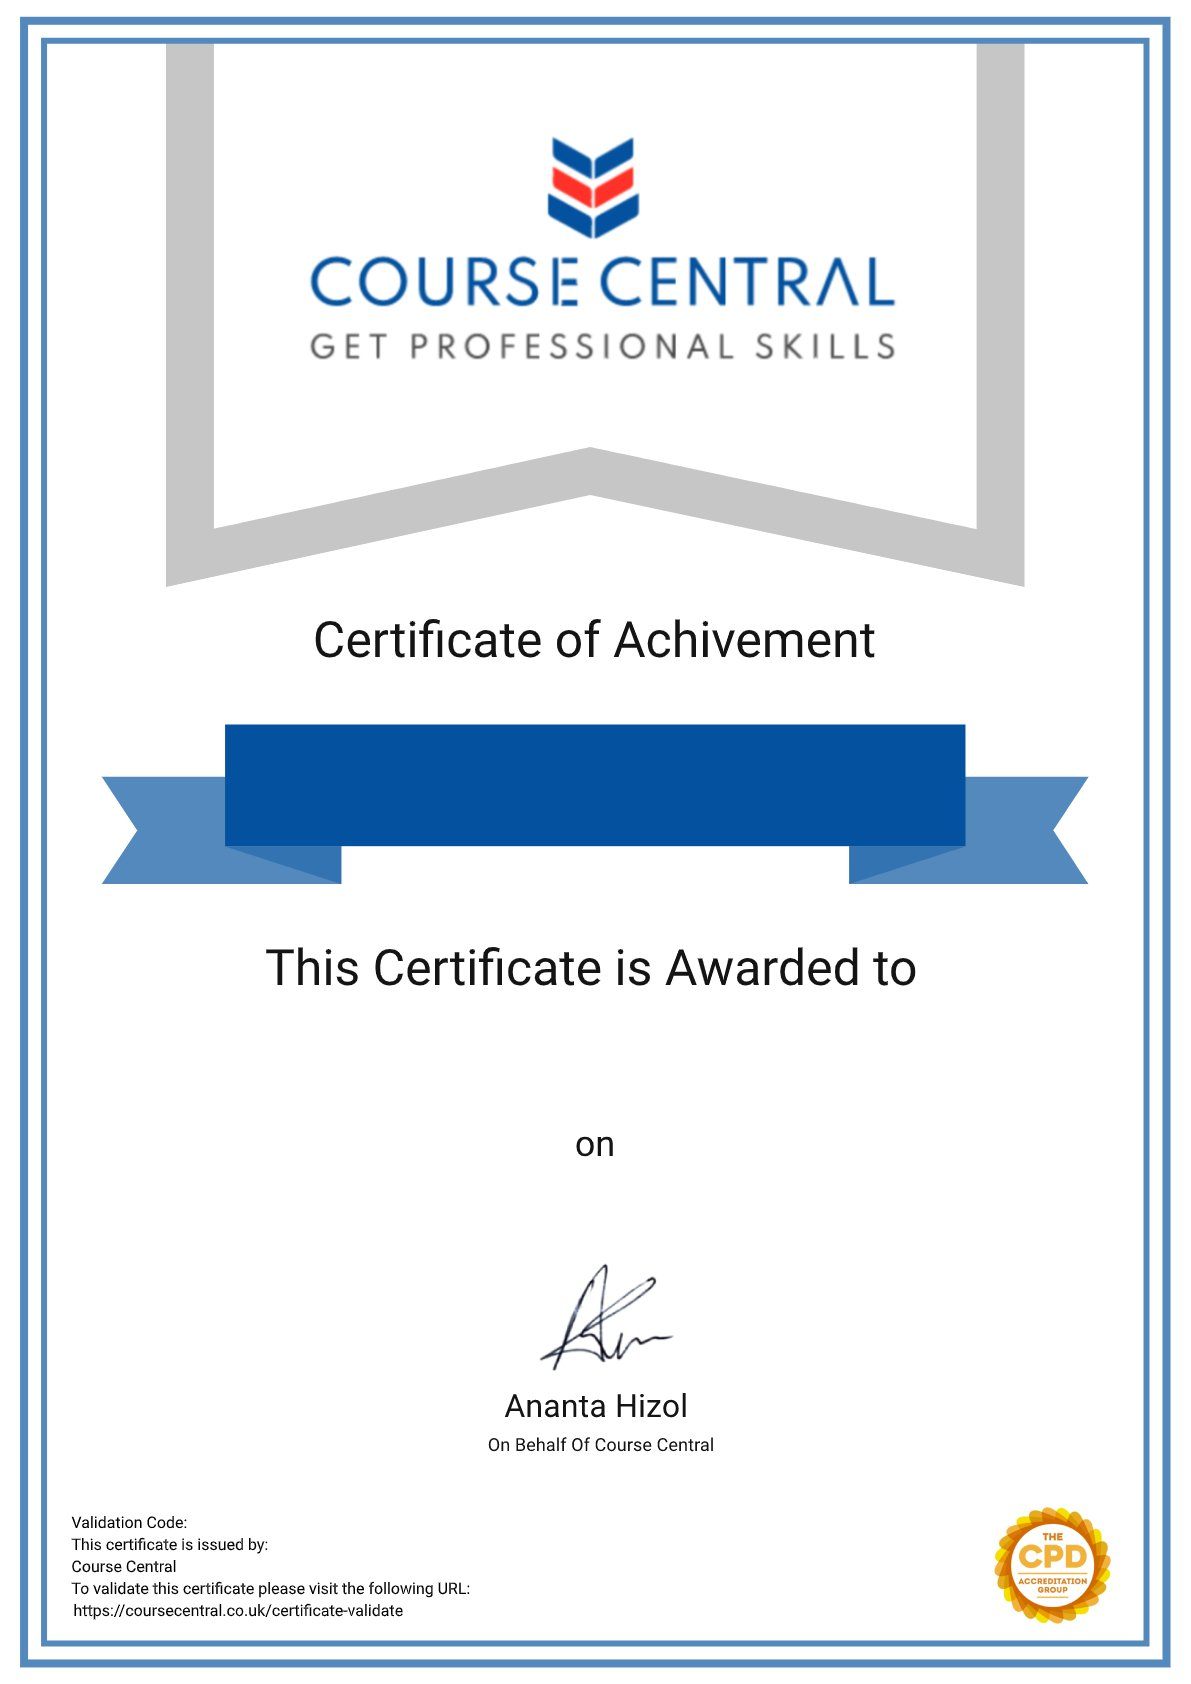 Course Central Certificate Template Final (1)